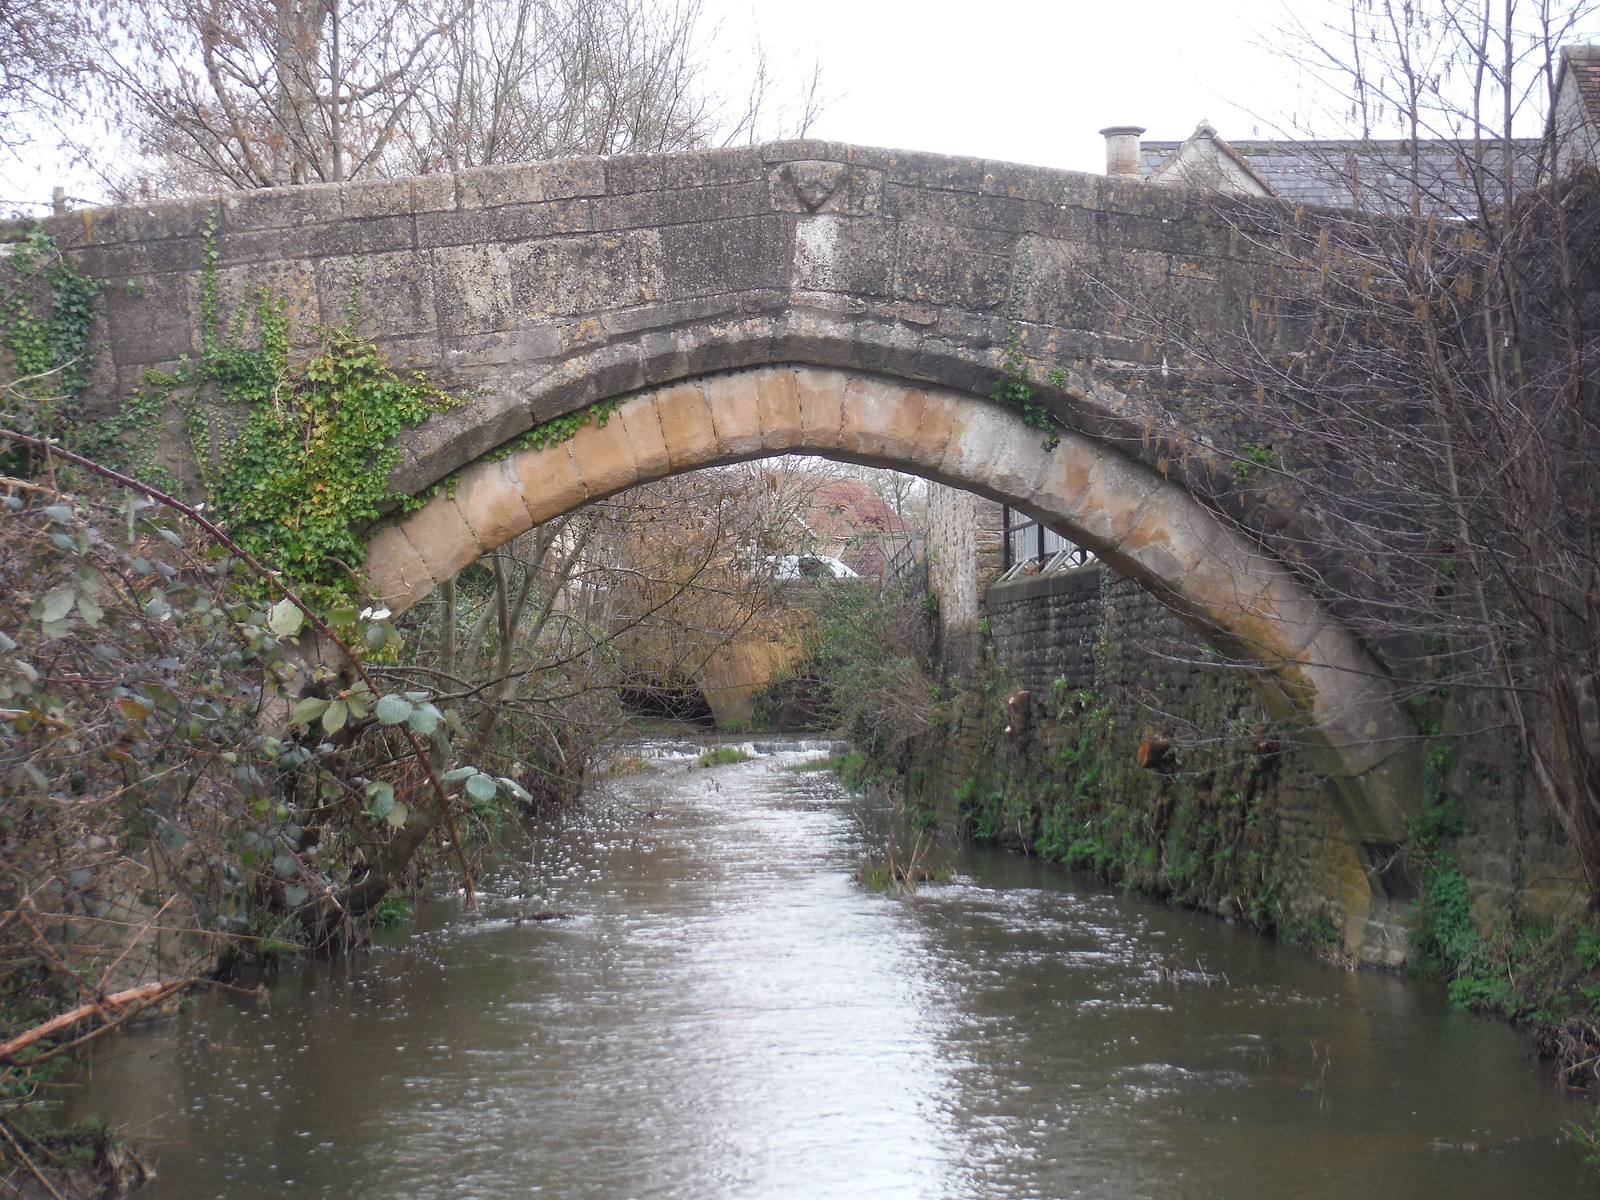 Packhorse Bridge over River Brue, Bruton SWC Walk 284 Bruton Circular (via Hauser & Wirth Somerset) or from Castle Cary